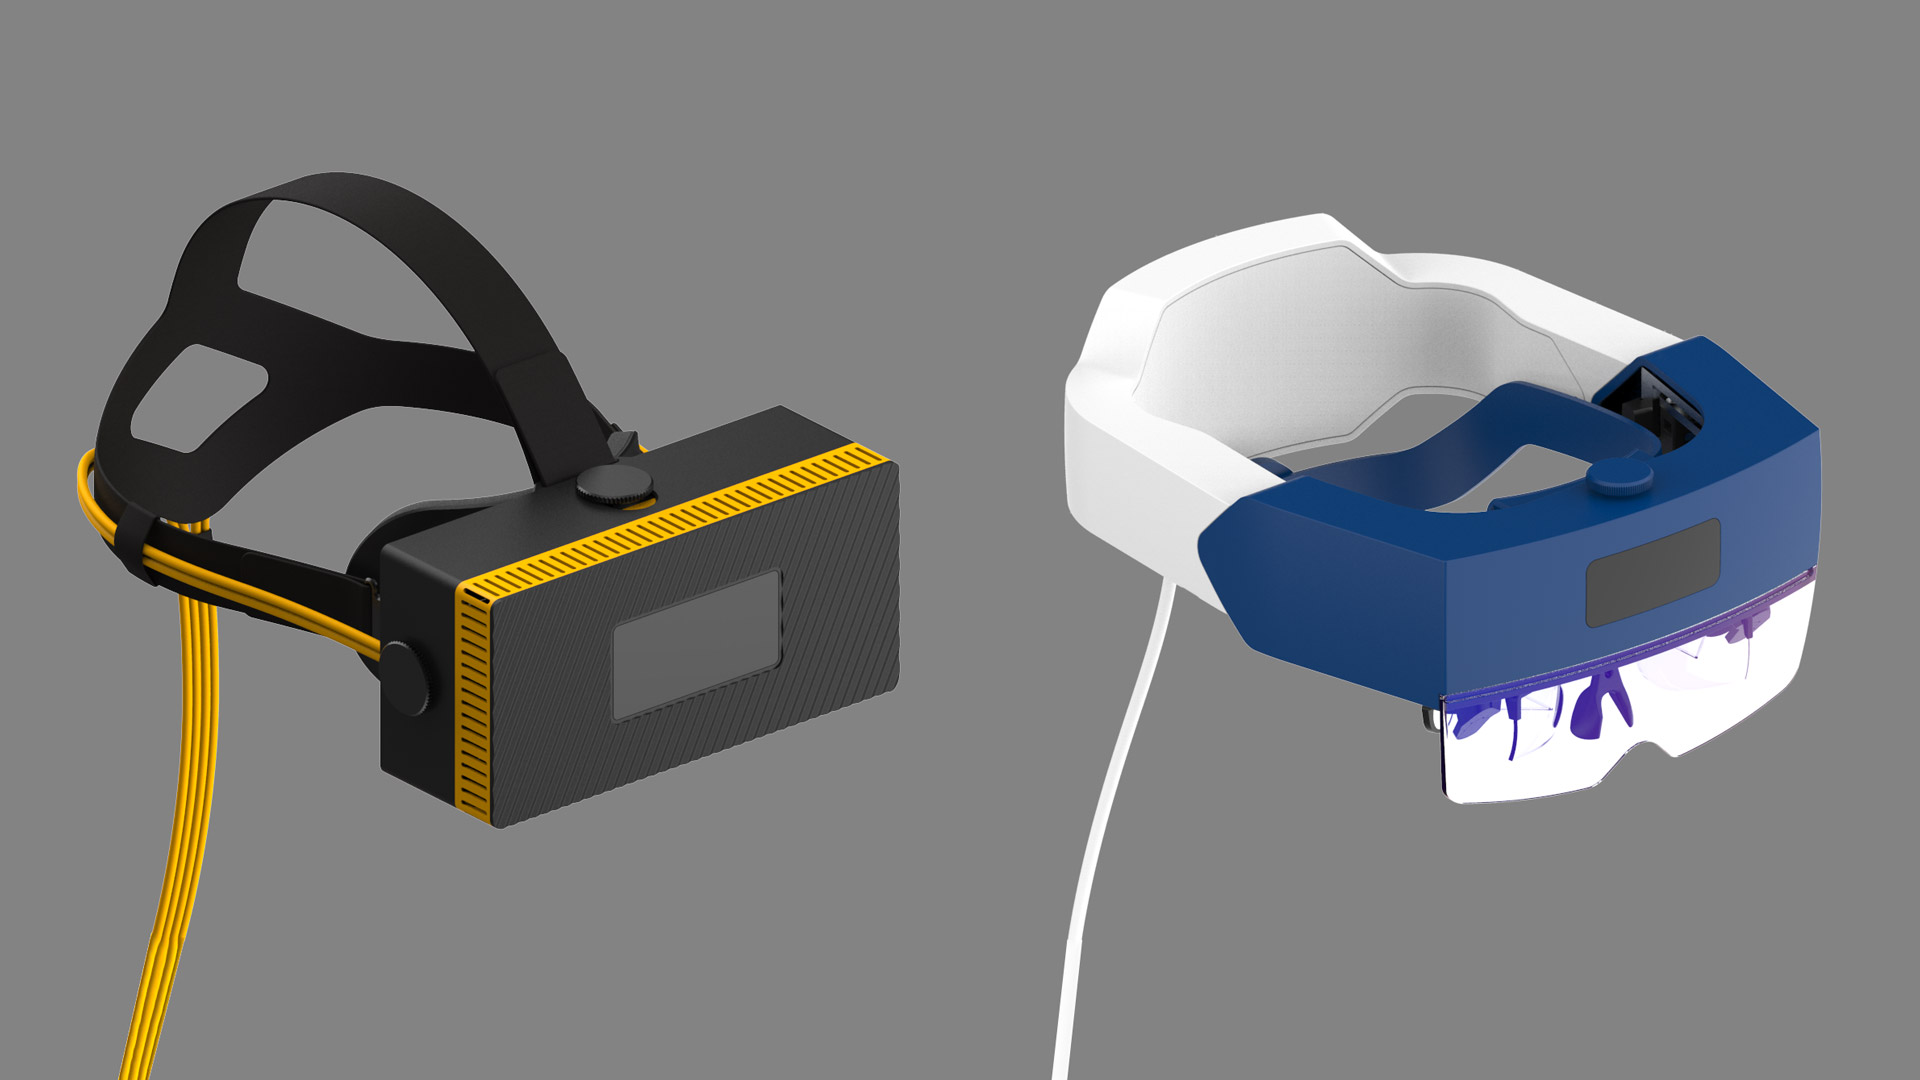 CREAL Reveals Its First Light-field AR & VR Headset Prototypes